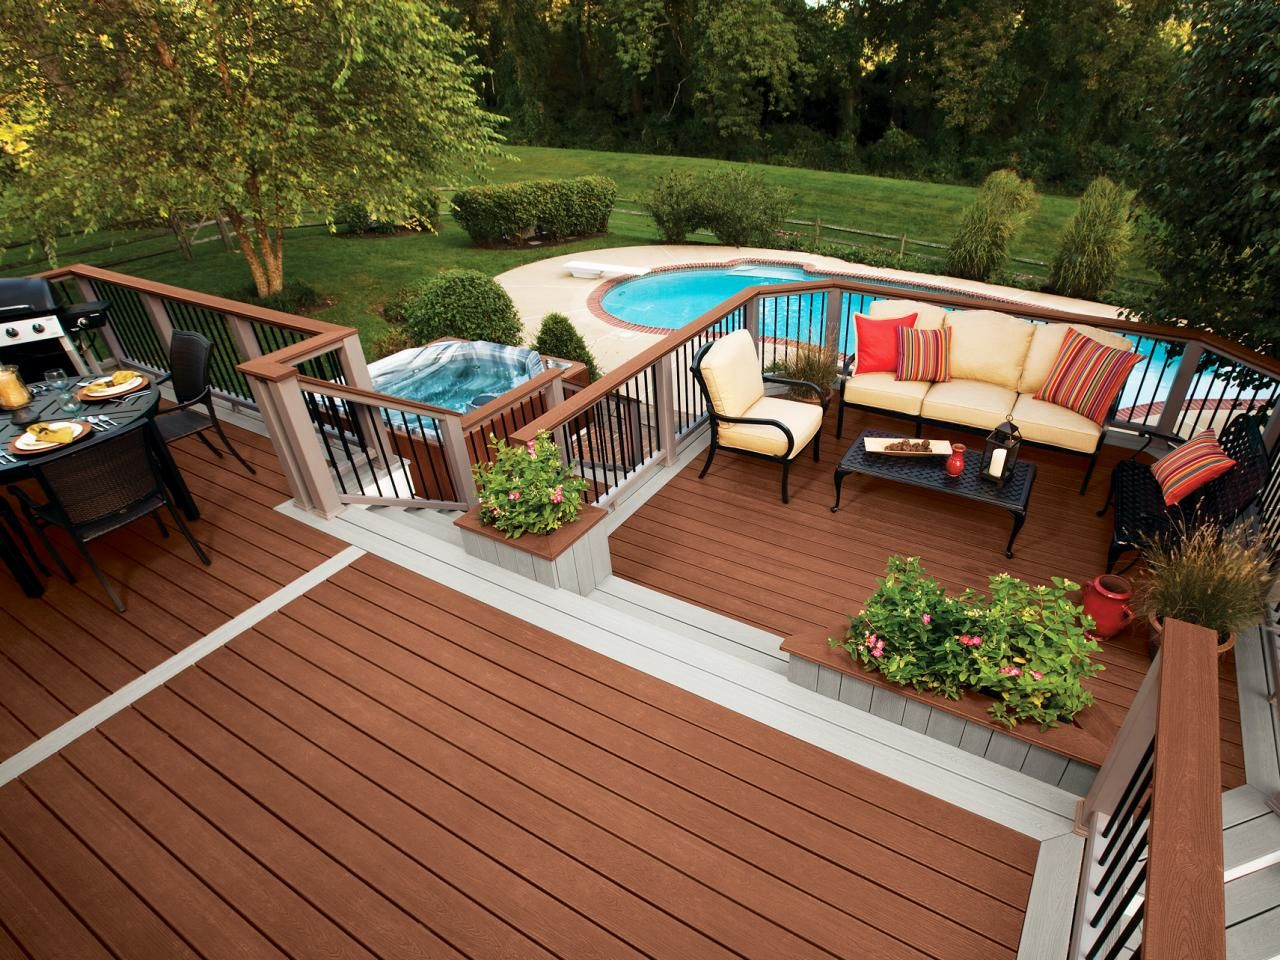 10 Pool Deck and Patio Designs | Decking, Deck design and Hgtv